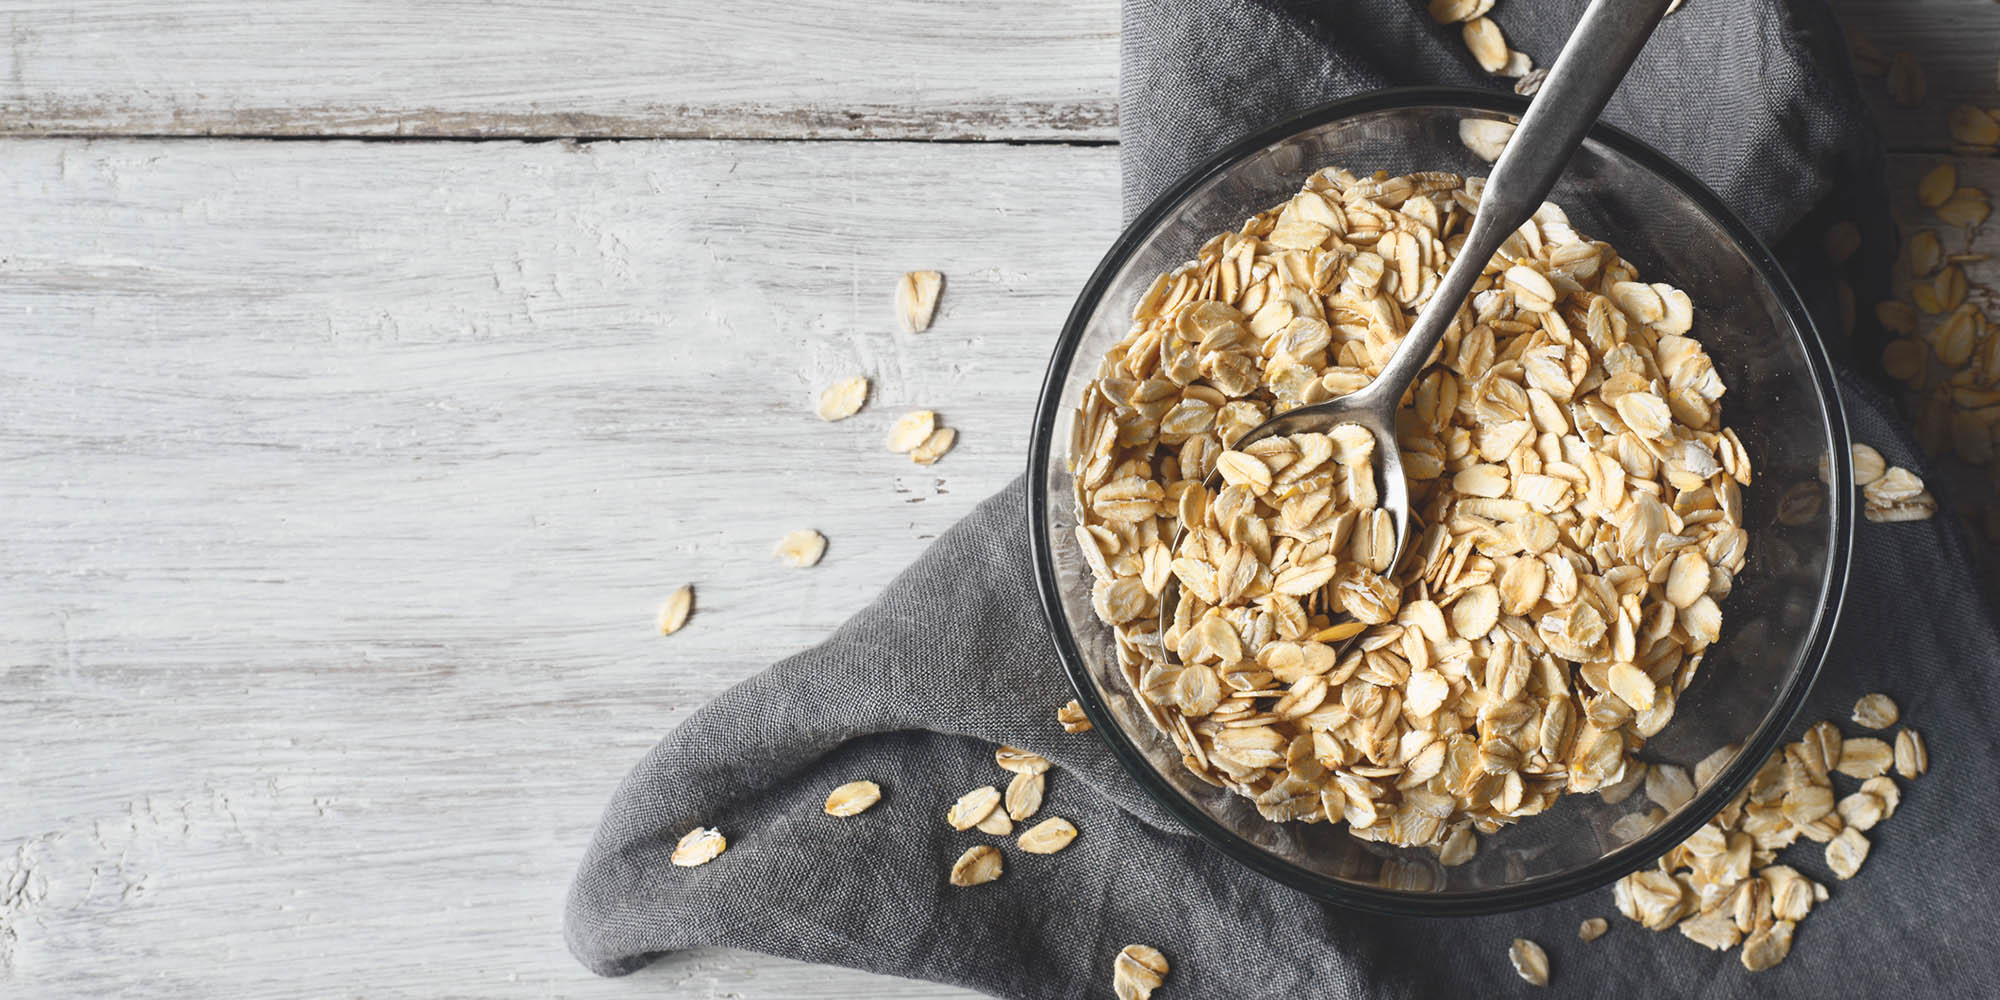 How Well Do You Know Your Oatmeal?